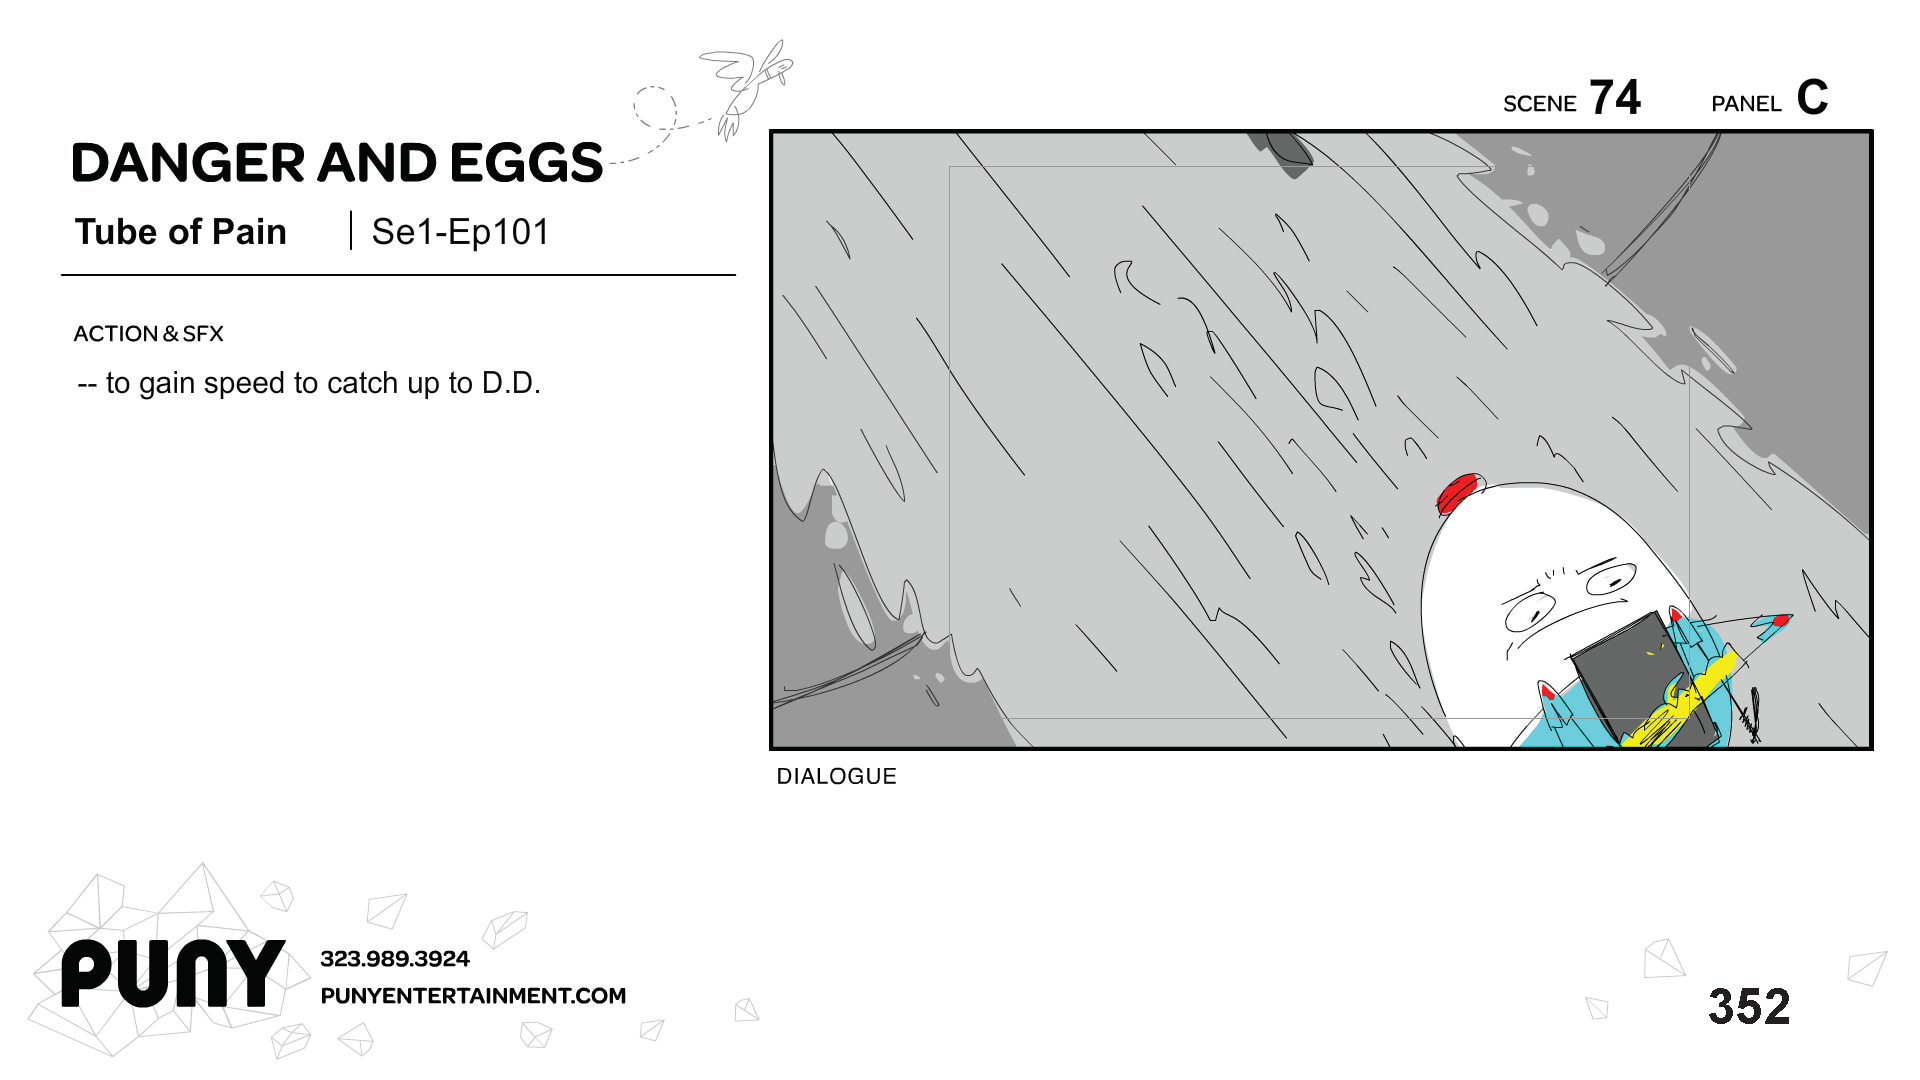 MikeOwens_STORYBOARDS_DangerAndEggs_Page_247.png